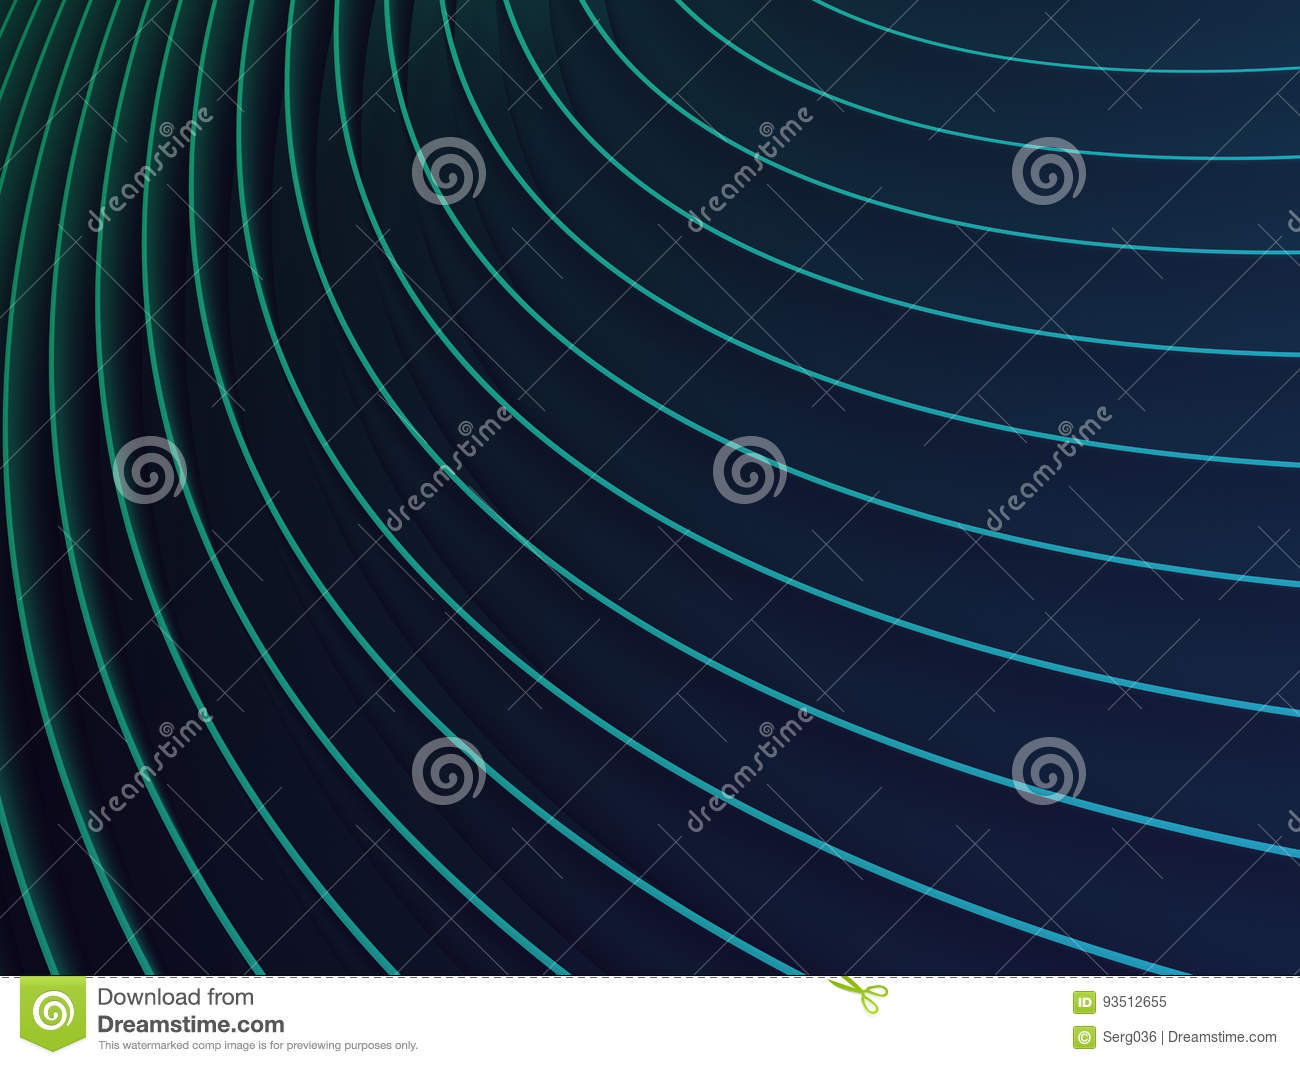 this is high resolution image stock illustration illustration of